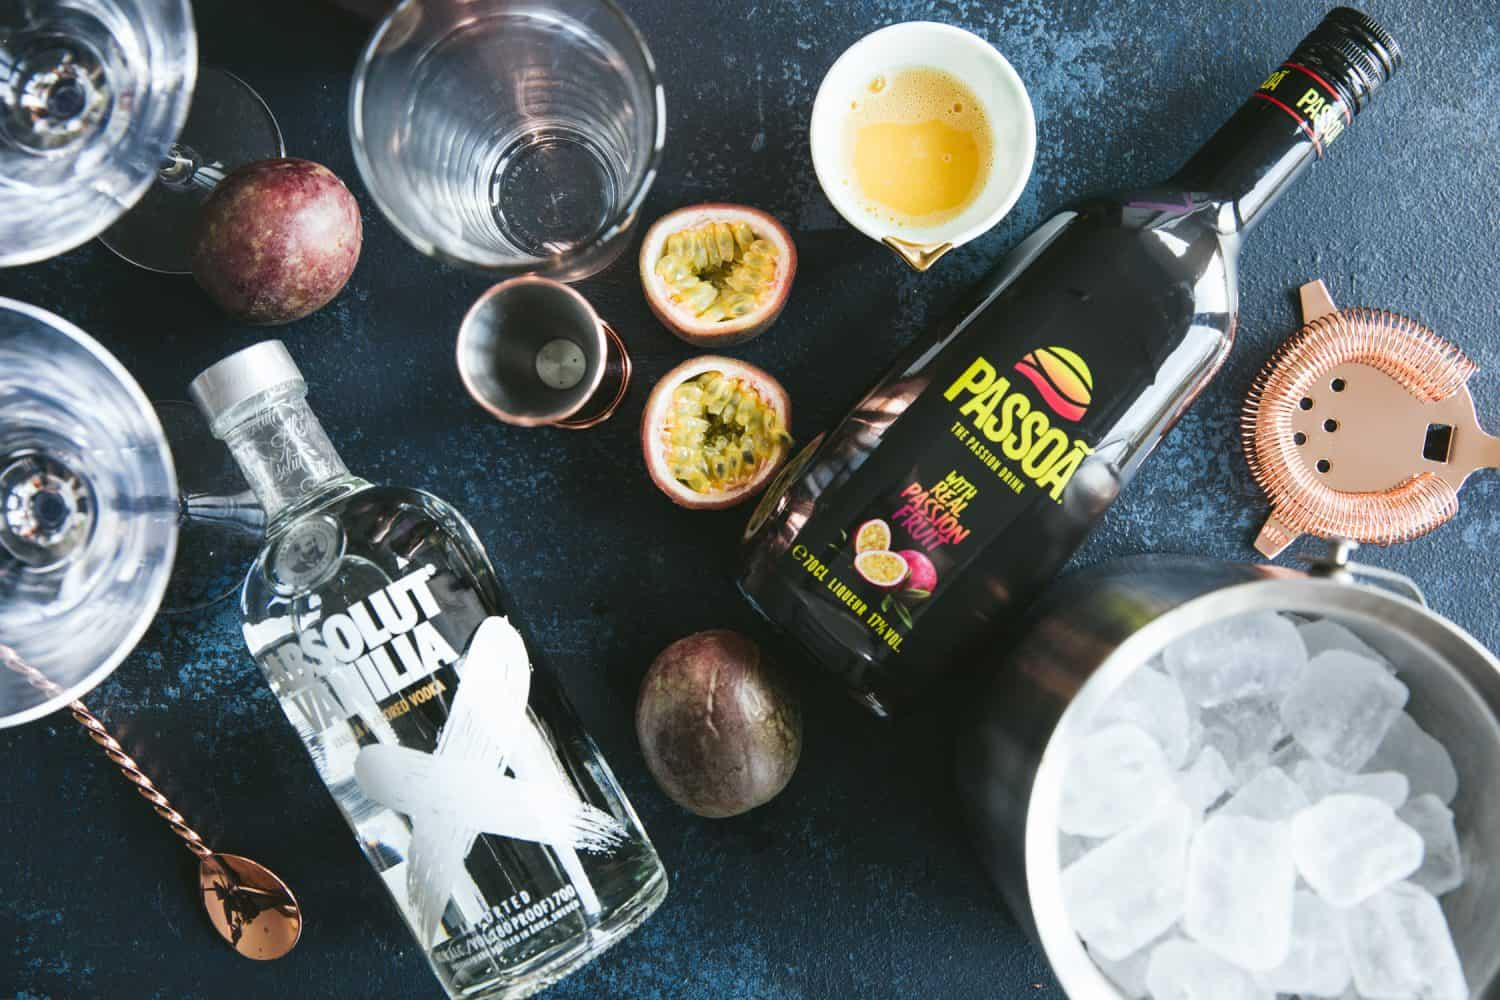 Ingredients for a Passion Fruit martini.